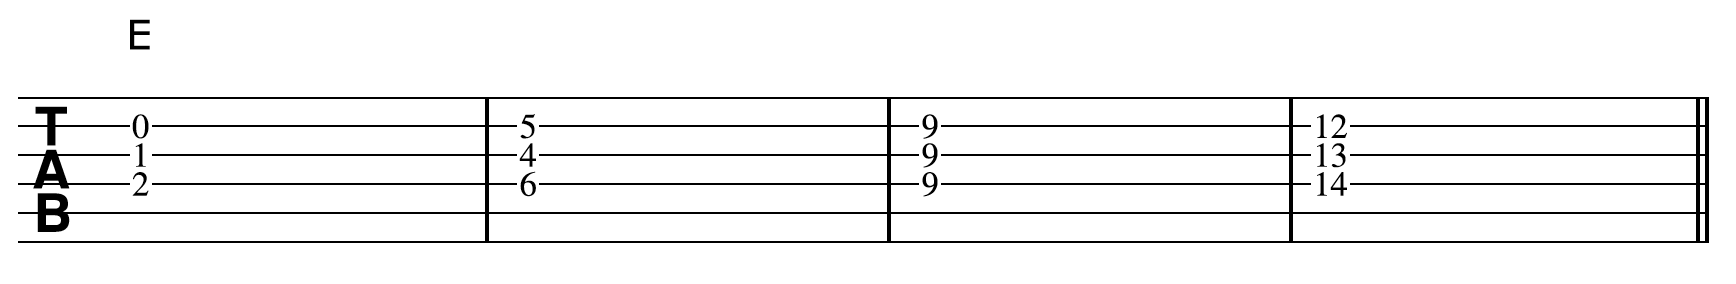 Creative Guitar E Chord Shapes